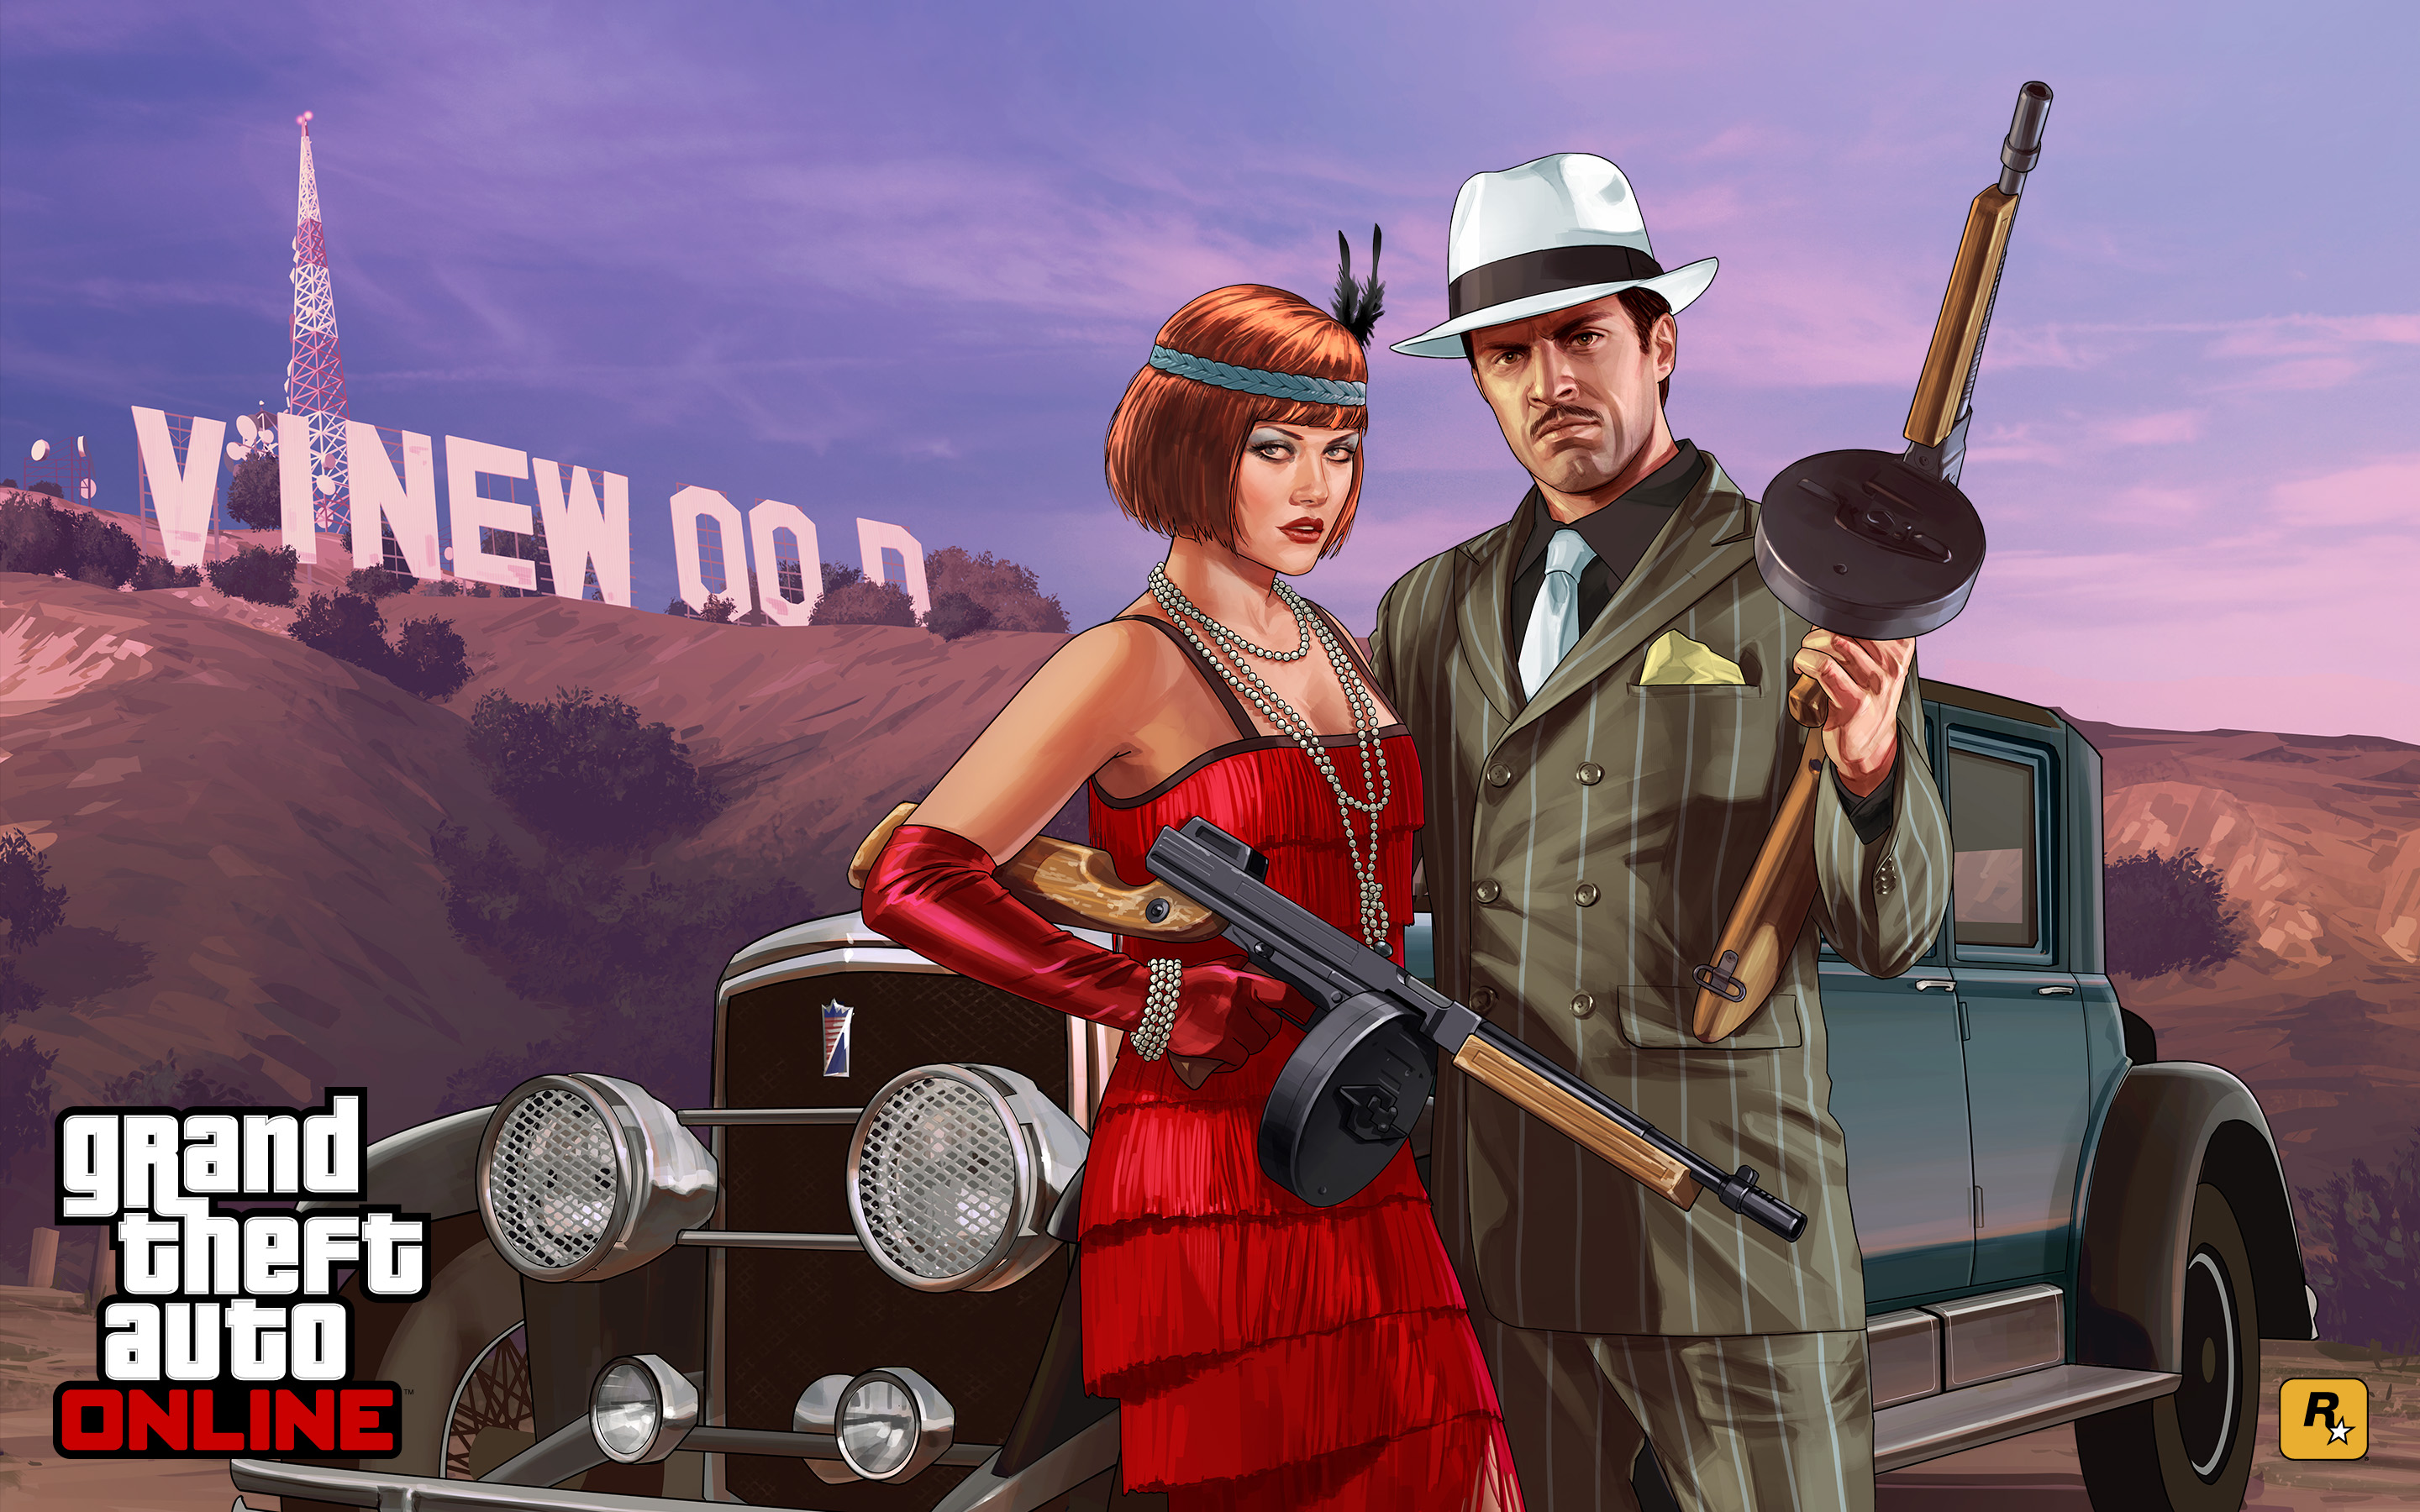 Widescreen-Gaming-GTA-5-1670-Online-Wallpaper-Valentines-Day-Massacre- Grand-Theft-Auto-dvdbash